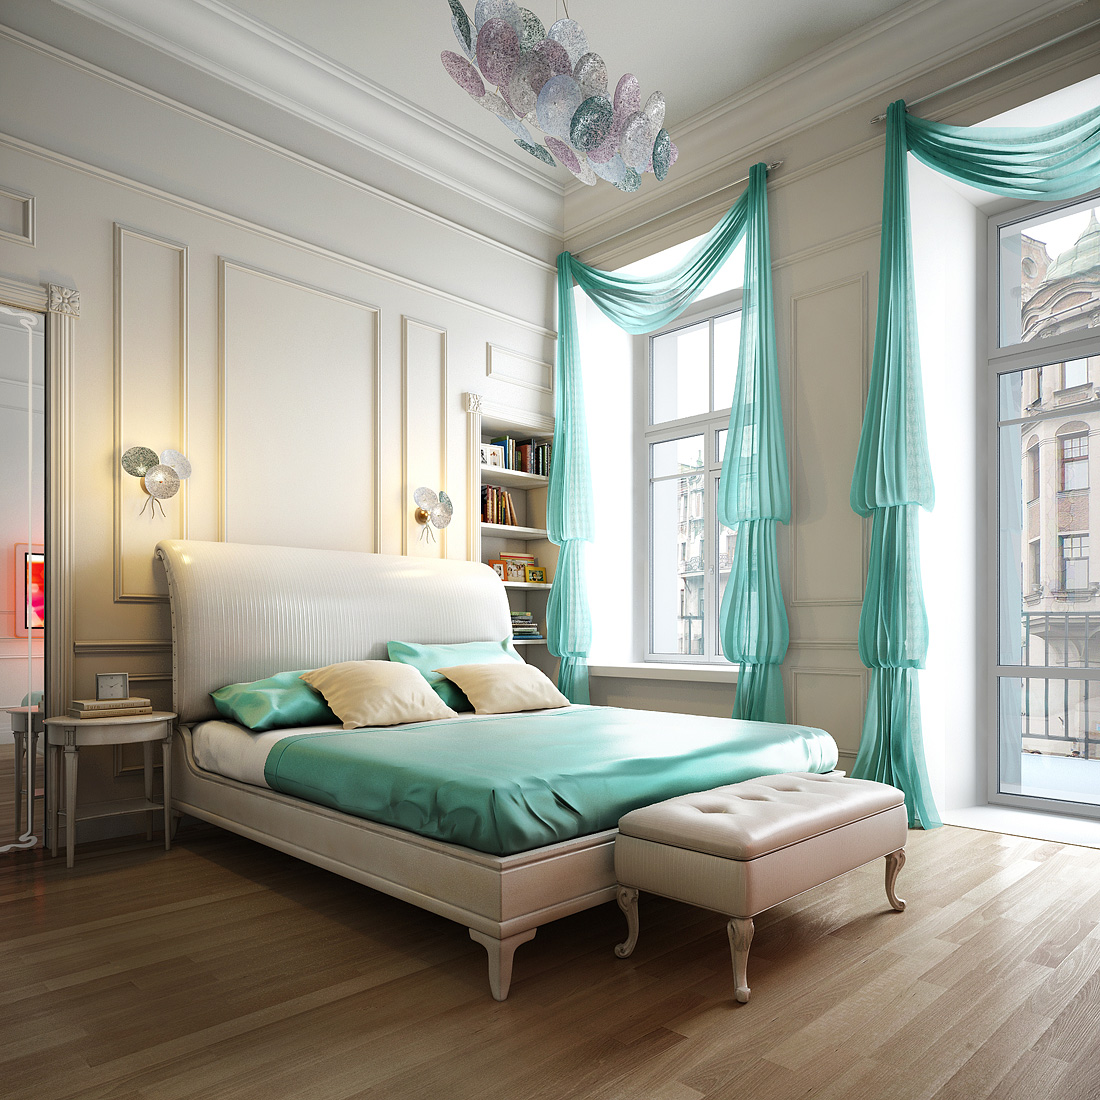 Impressive Design Aqua Blue Bedroom Spalnya